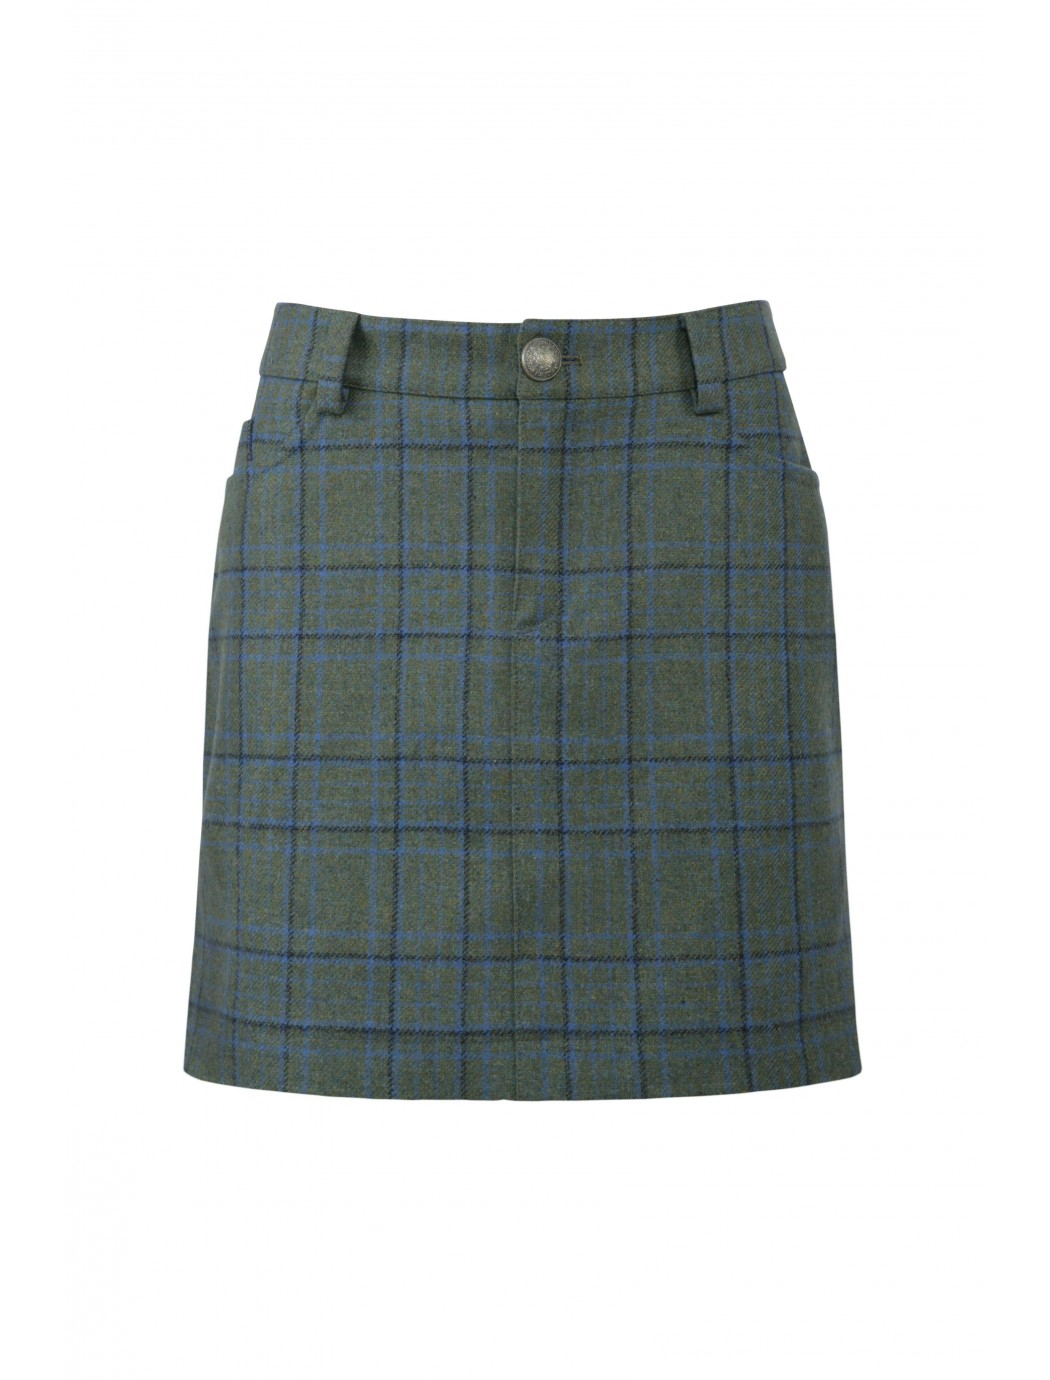 clover-tweed-mini-skirt-galway-river-dubarry-1